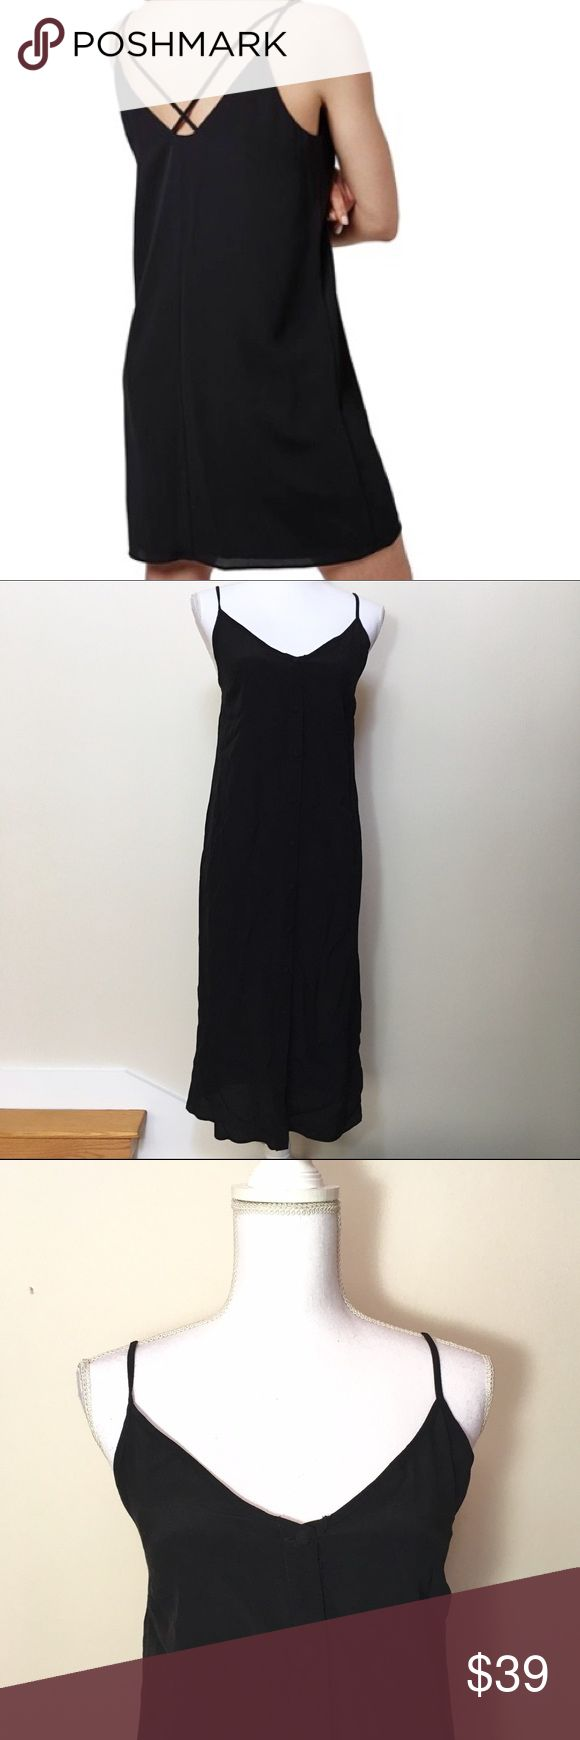 NWT Topshop front button black dress cross back 4 This Topshop dress is a cross between 90s grunge and grown up glamour. It's very easy to dress it up or leave it as simple summer dress. Lightweight not lined. Front button closure and crossed straps make it even more special. Sz 4 Brand new with tags attached. Topshop Dresses